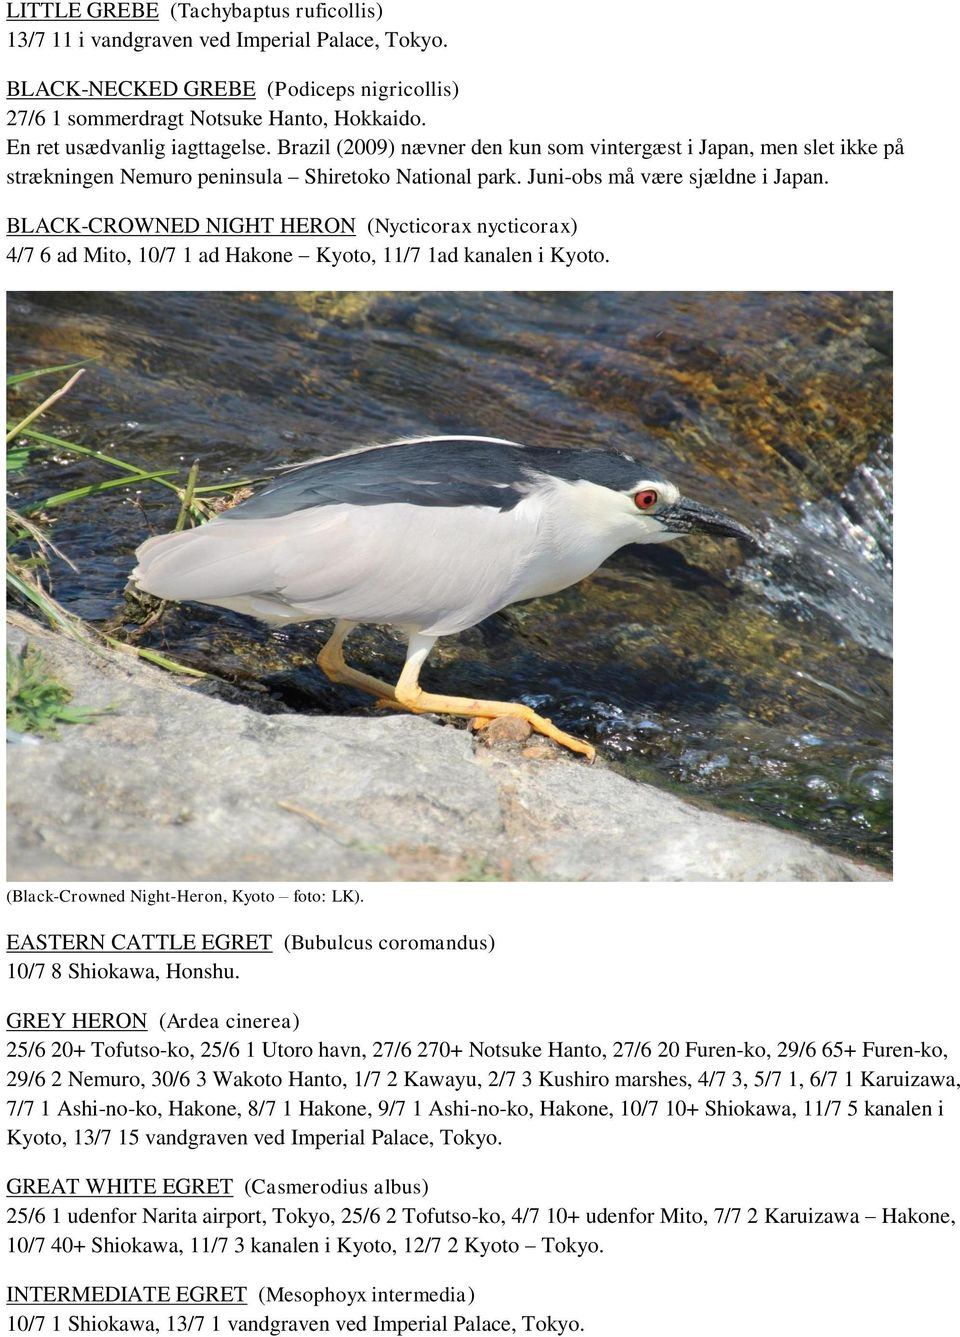 BLACK-CROWNED NIGHT HERON (Nycticorax nycticorax) 4/7 6 ad Mito, 10/7 1 ad Hakone Kyoto, 11/7 1ad kanalen i Kyoto. (Black-Crowned Night-Heron, Kyoto foto: LK).